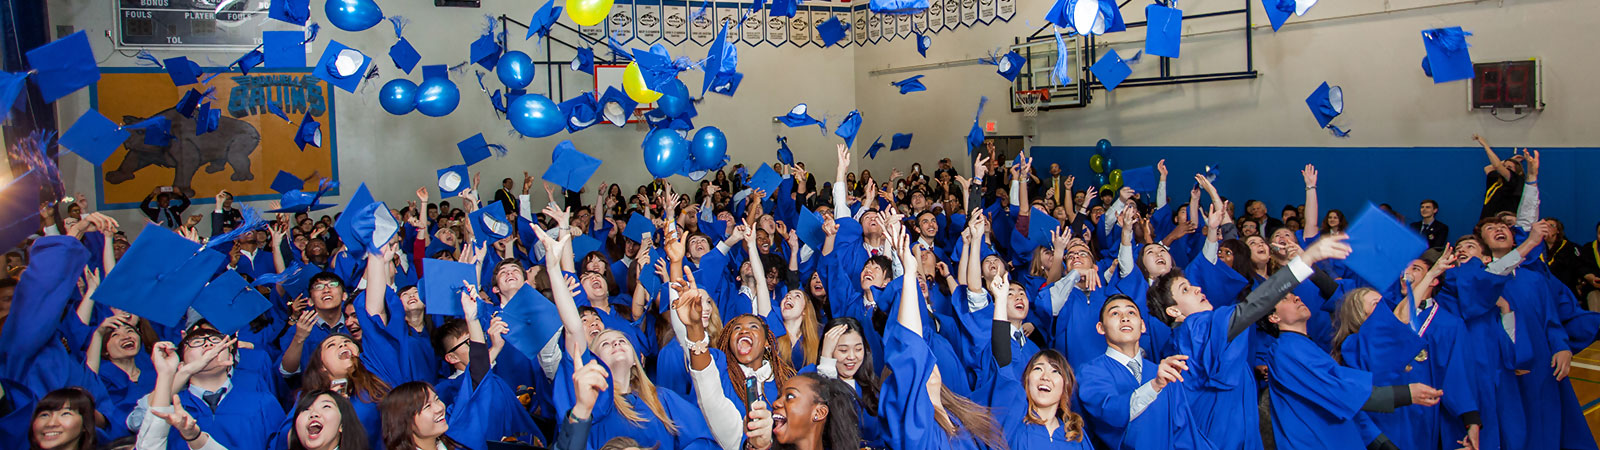 Bodwell Graduation 2015 Photos